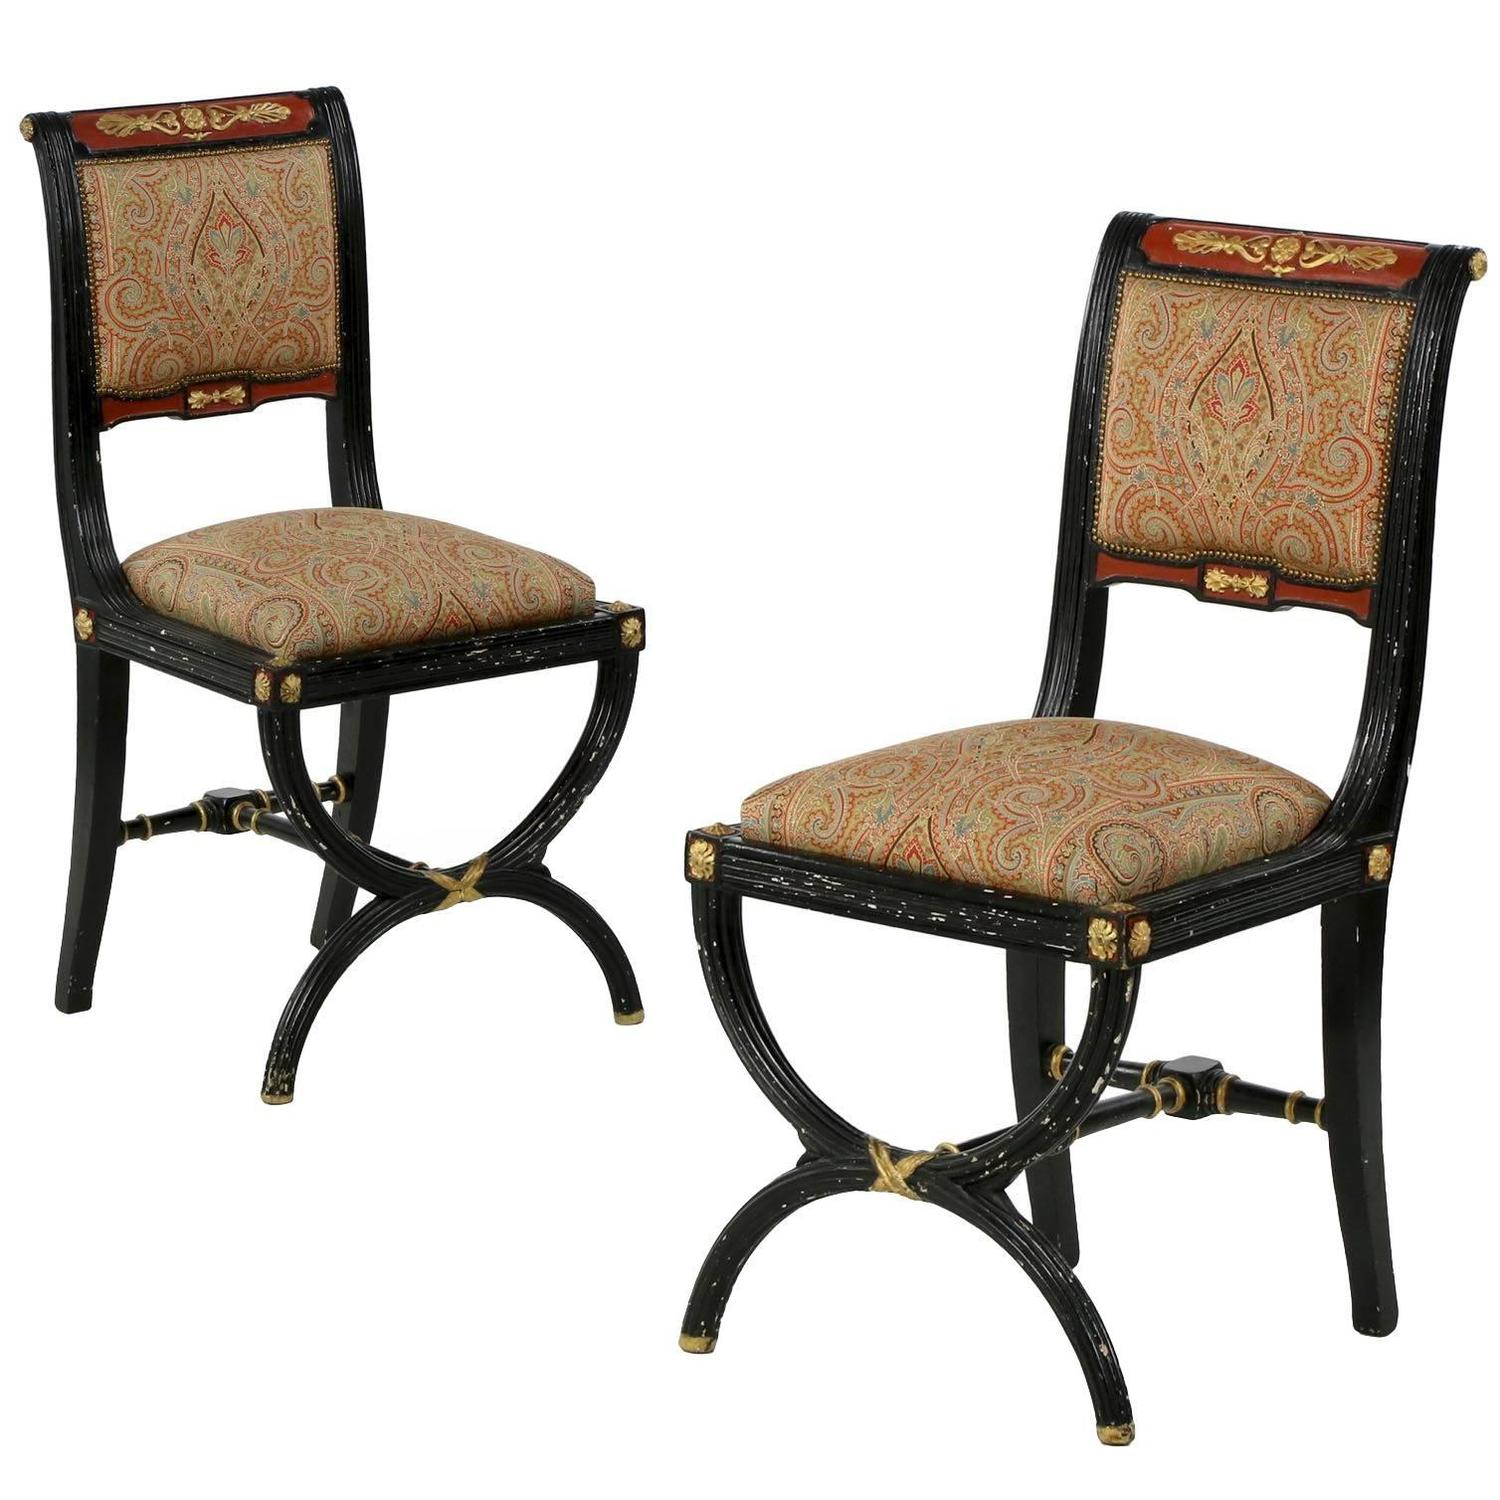 black and white paisley chair hanging rattan indoor pair of napoleon iii ebonized antique side chairs with